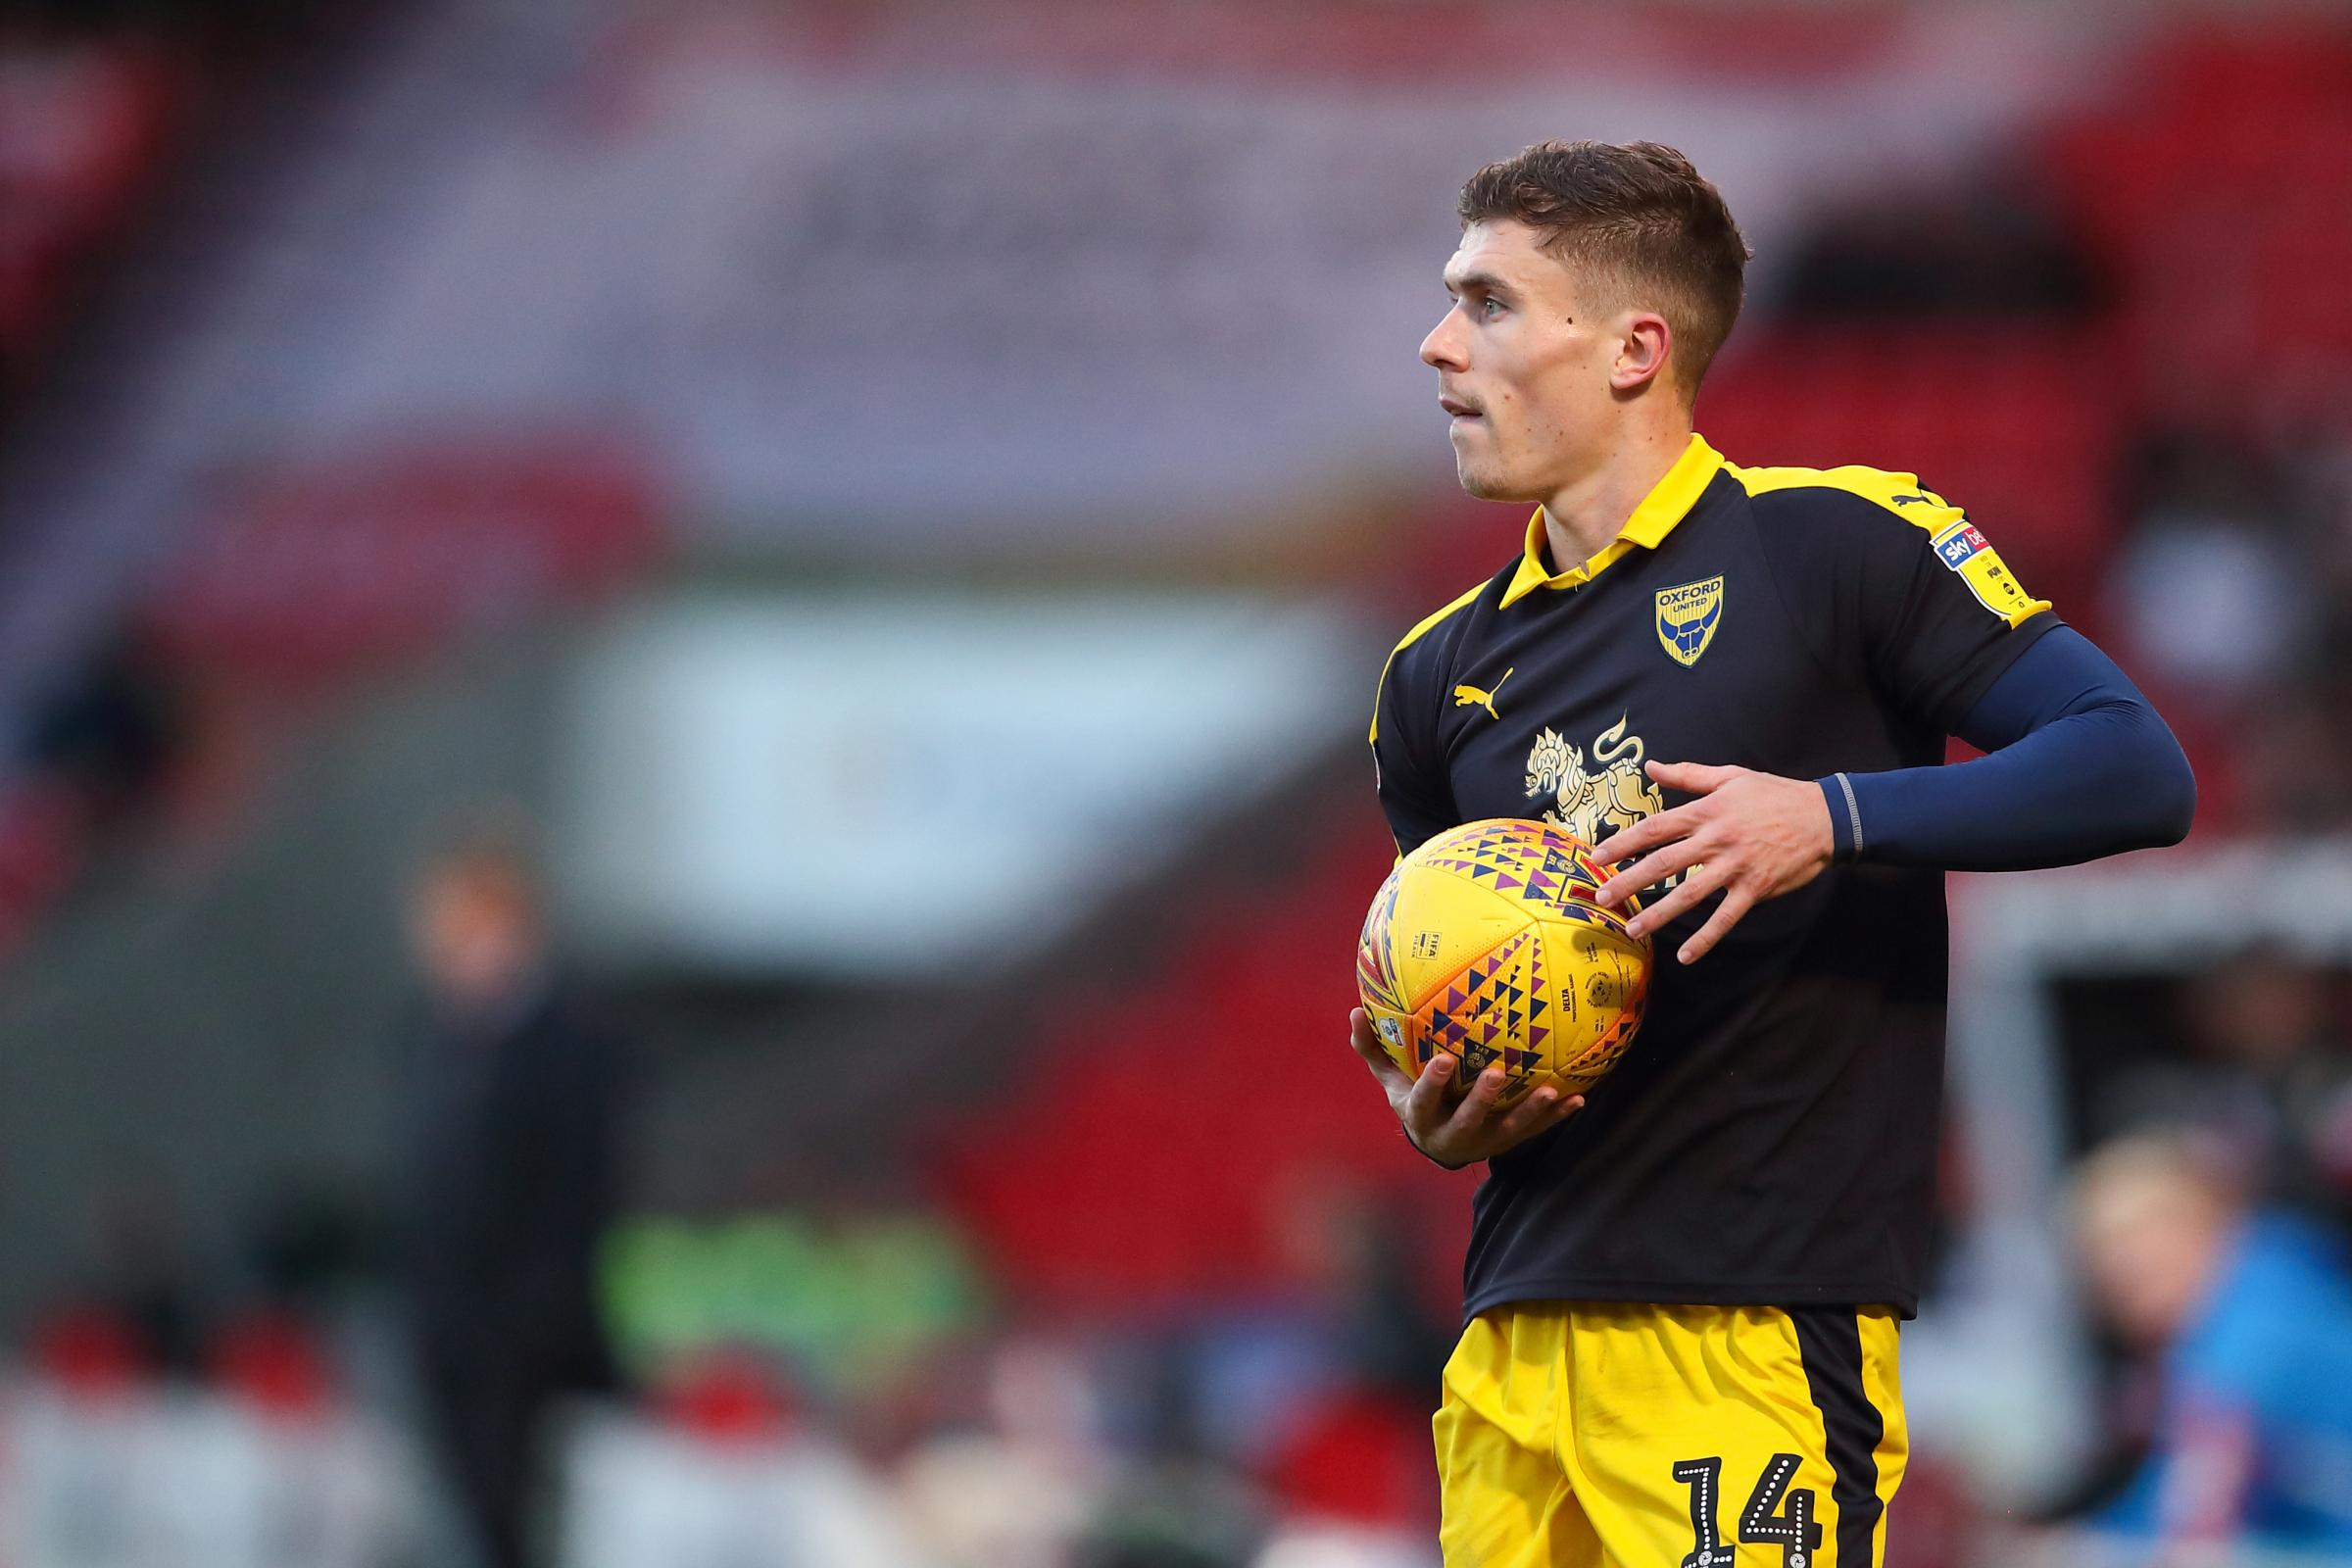 Doncaster Rovers v Oxford United, Keepmoat Stadium, 22nd December 2018 - Josh Ruffels of Oxford United.